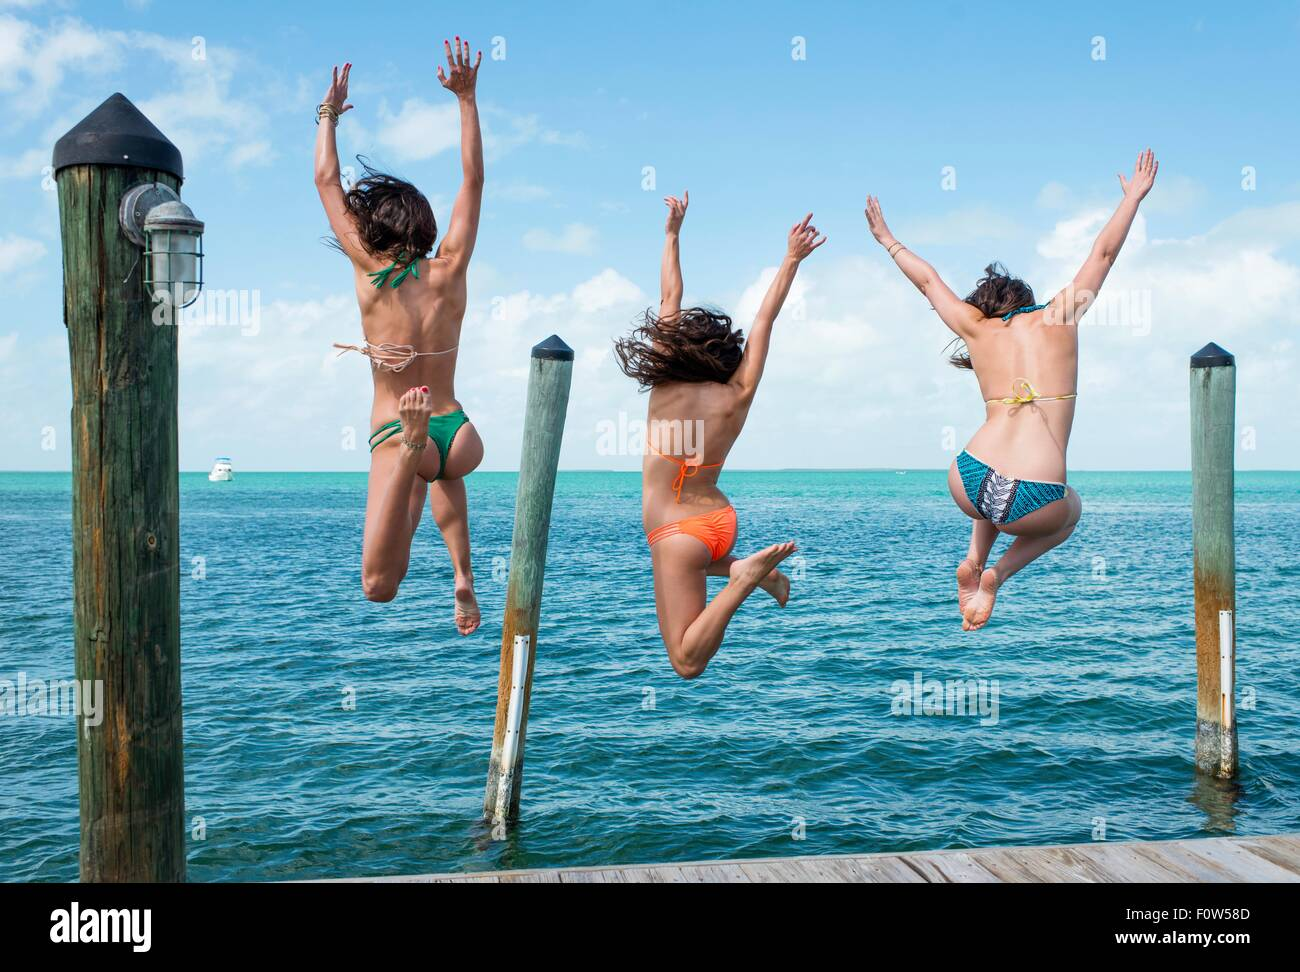 Rear view of three young woman jumping from sea pier, Islamorada, Florida, USA - Stock Image